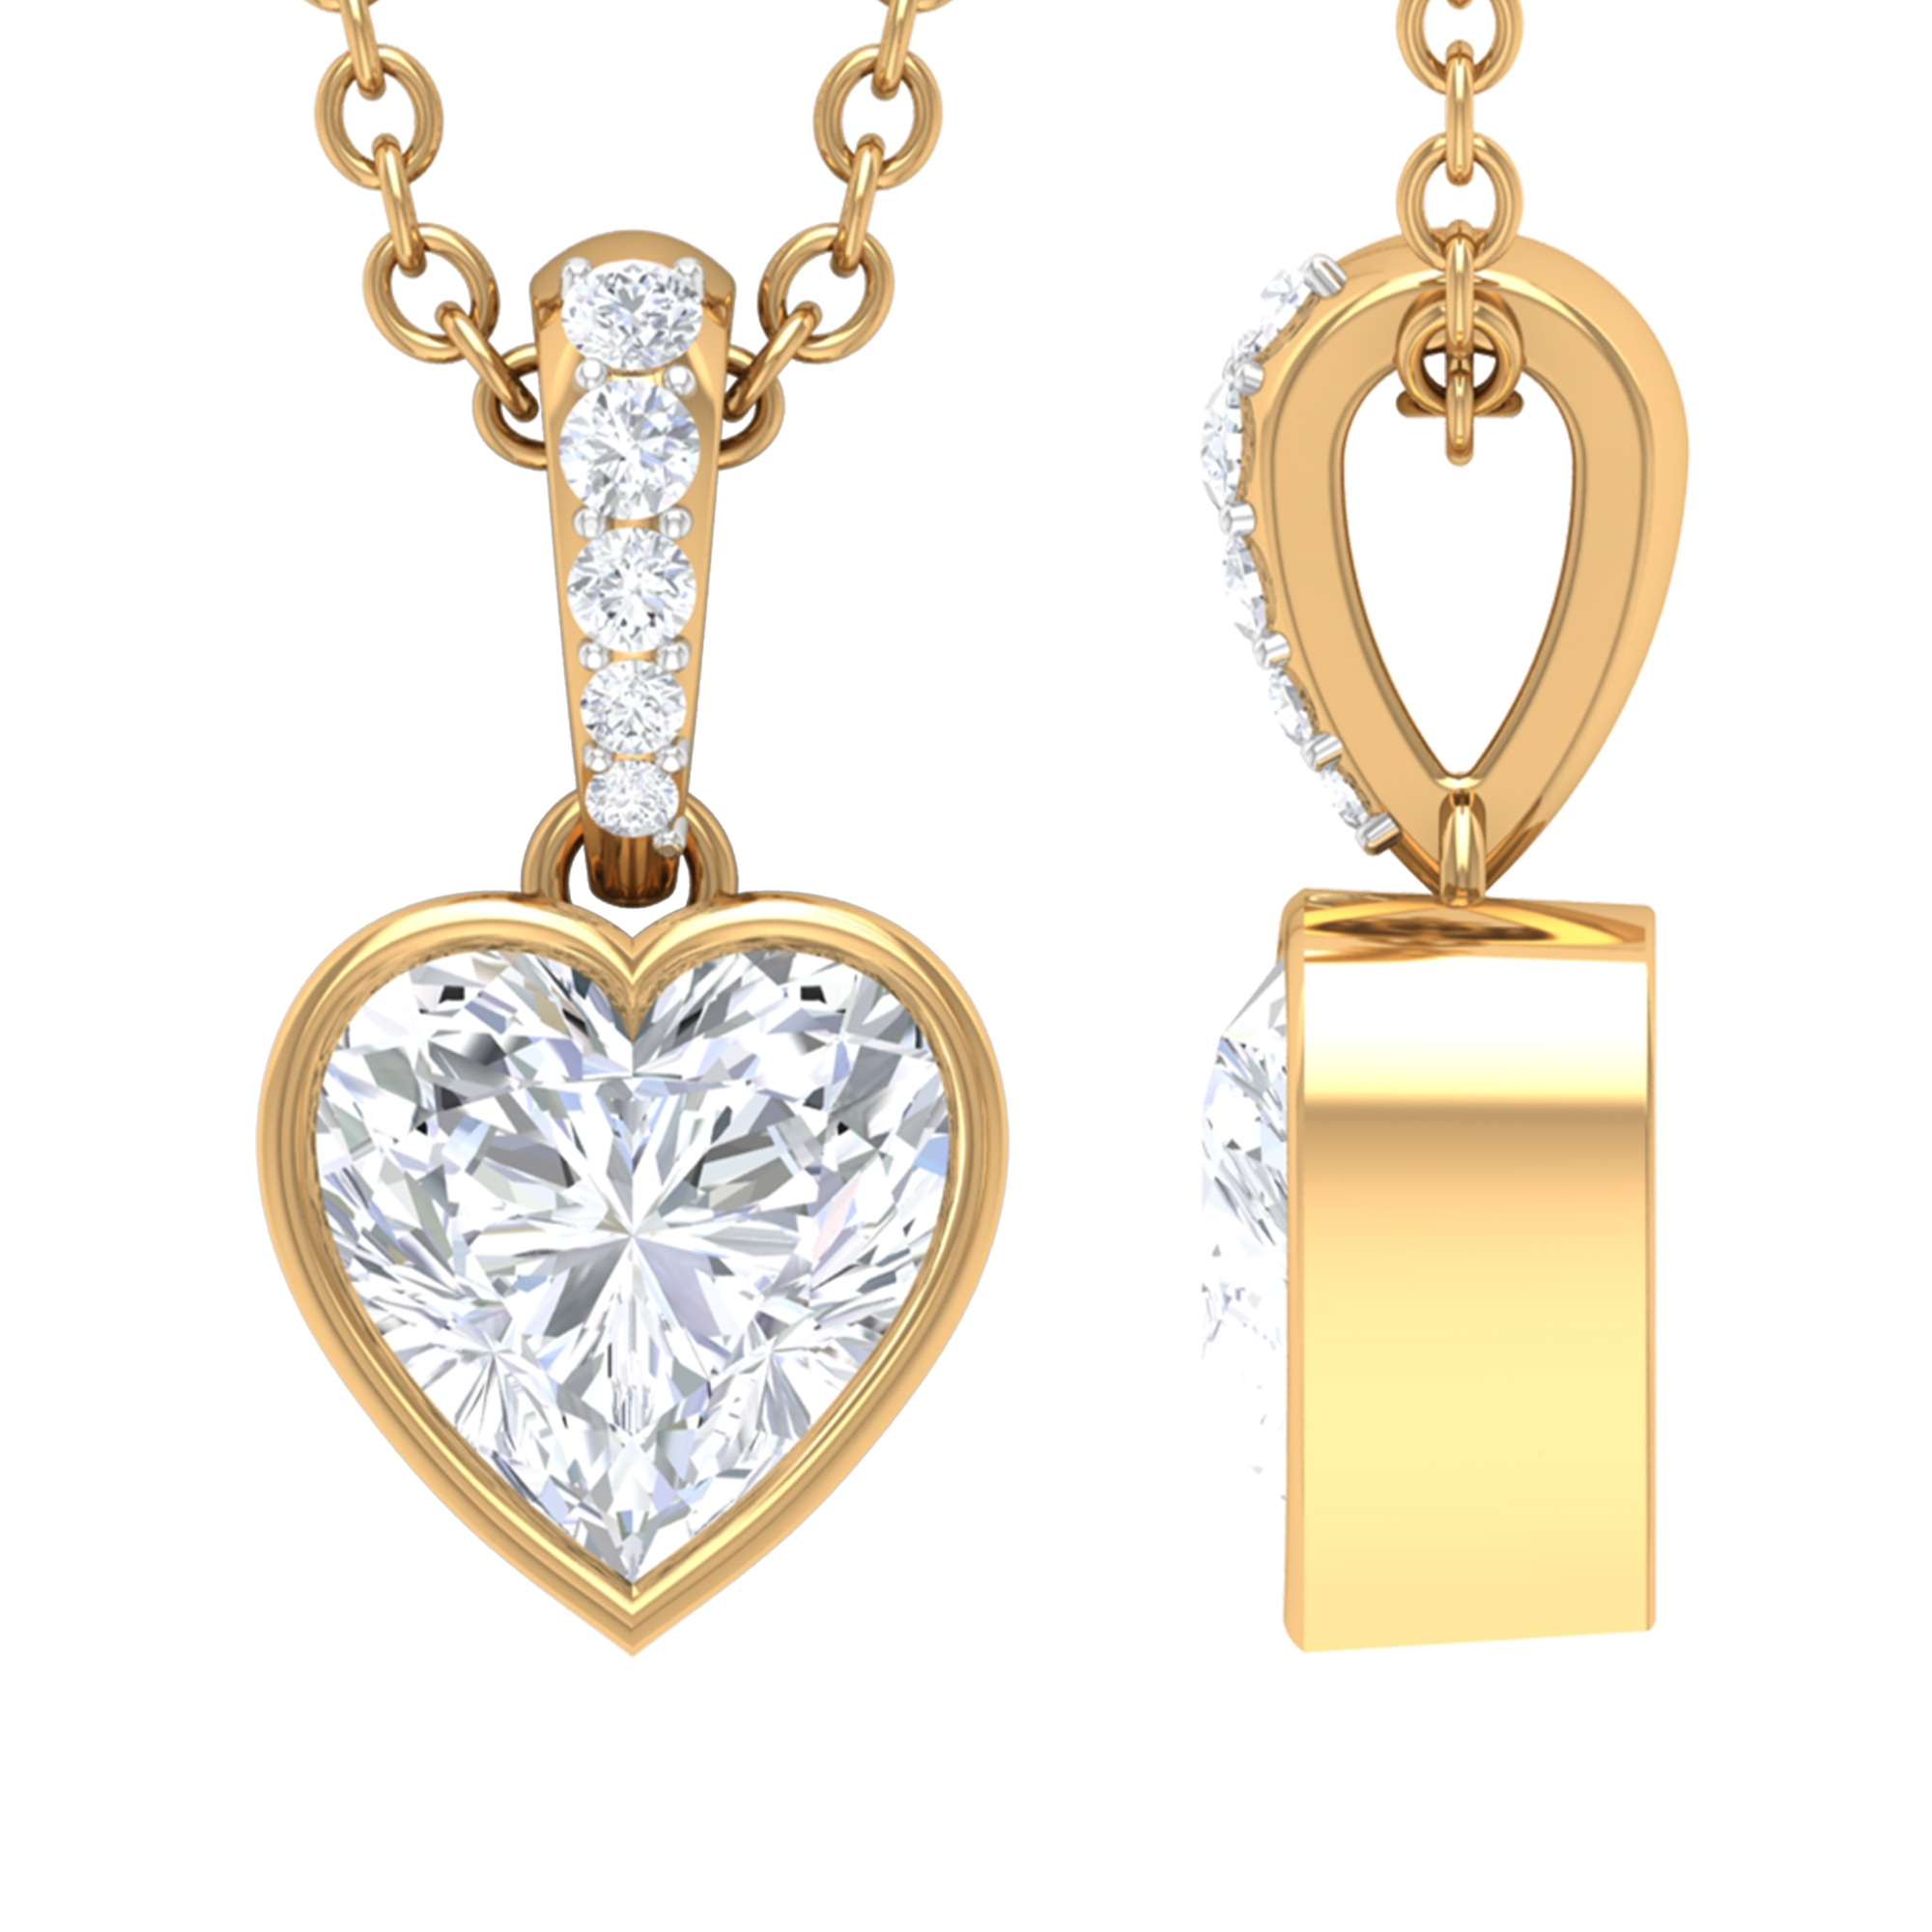 1/2 CT Heart Shape Diamond Solitaire Pendant Necklace with Accent Bail